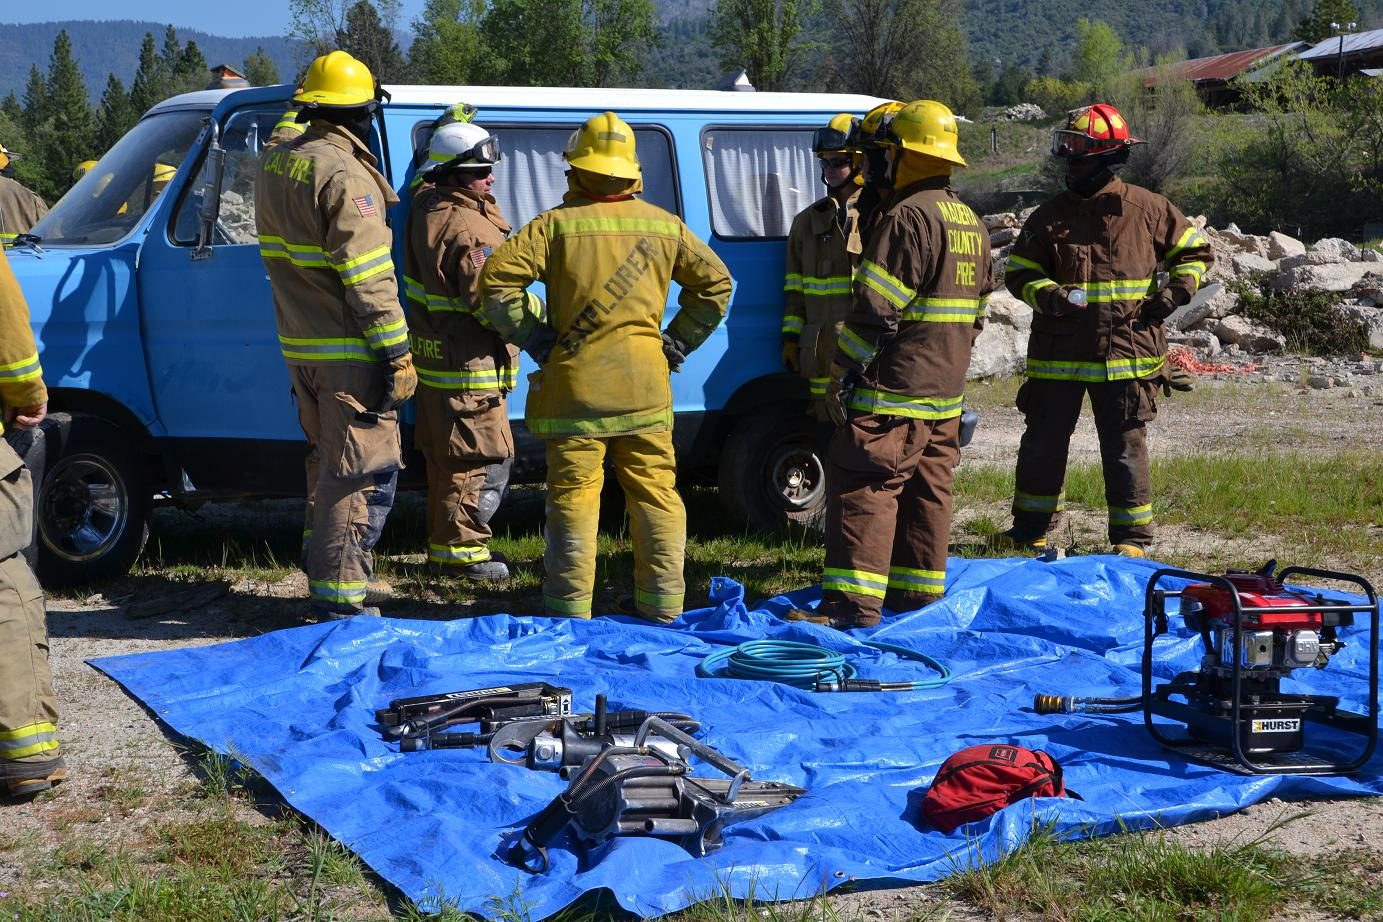 Training on the use of the Jaws of Life - photo by Gina Clugston